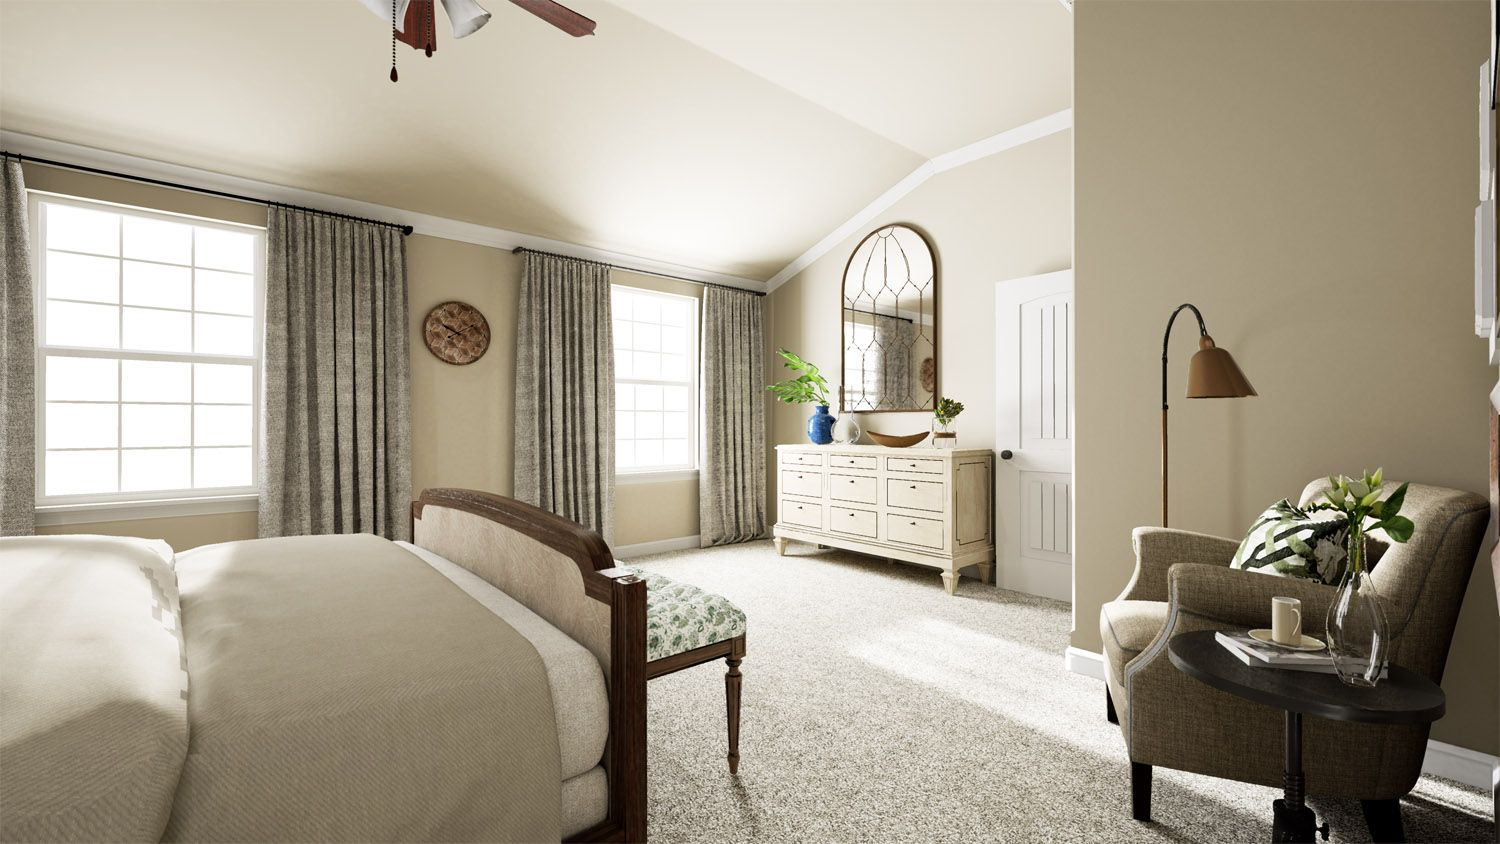 Bedroom featured in the 3000 Series By Schuber Mitchell Homes in Fayetteville, AR